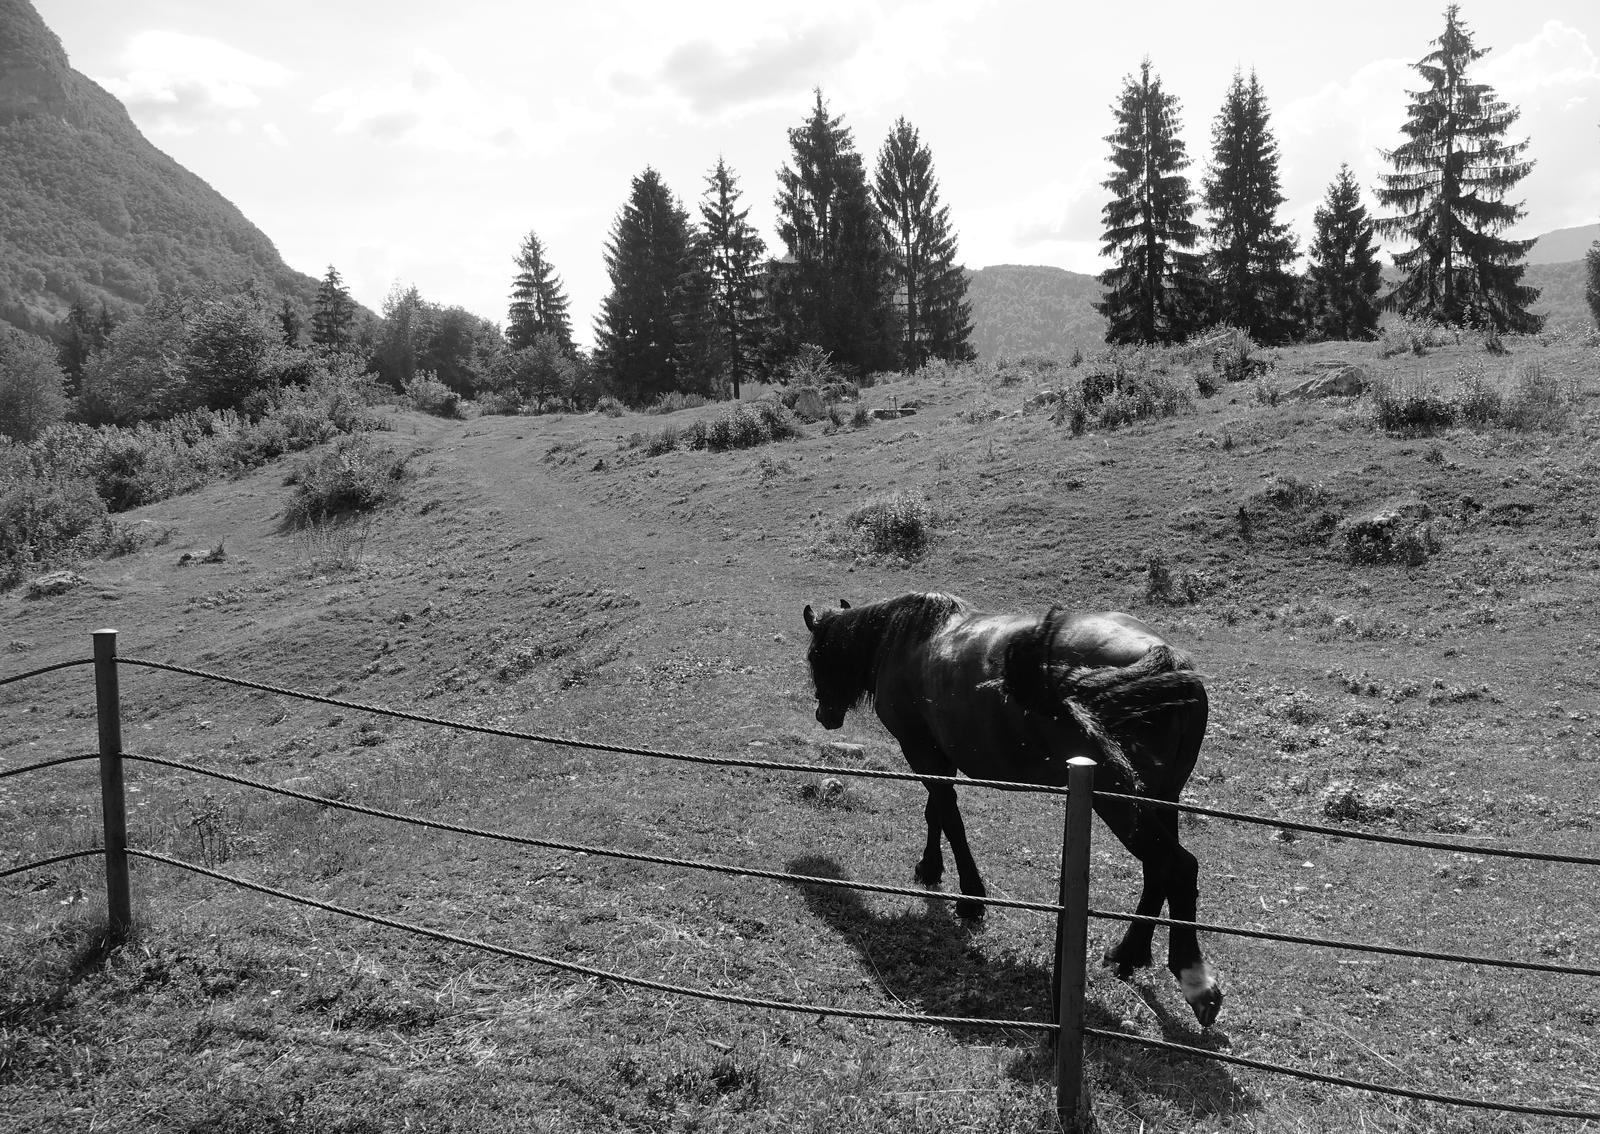 Horse in solitude